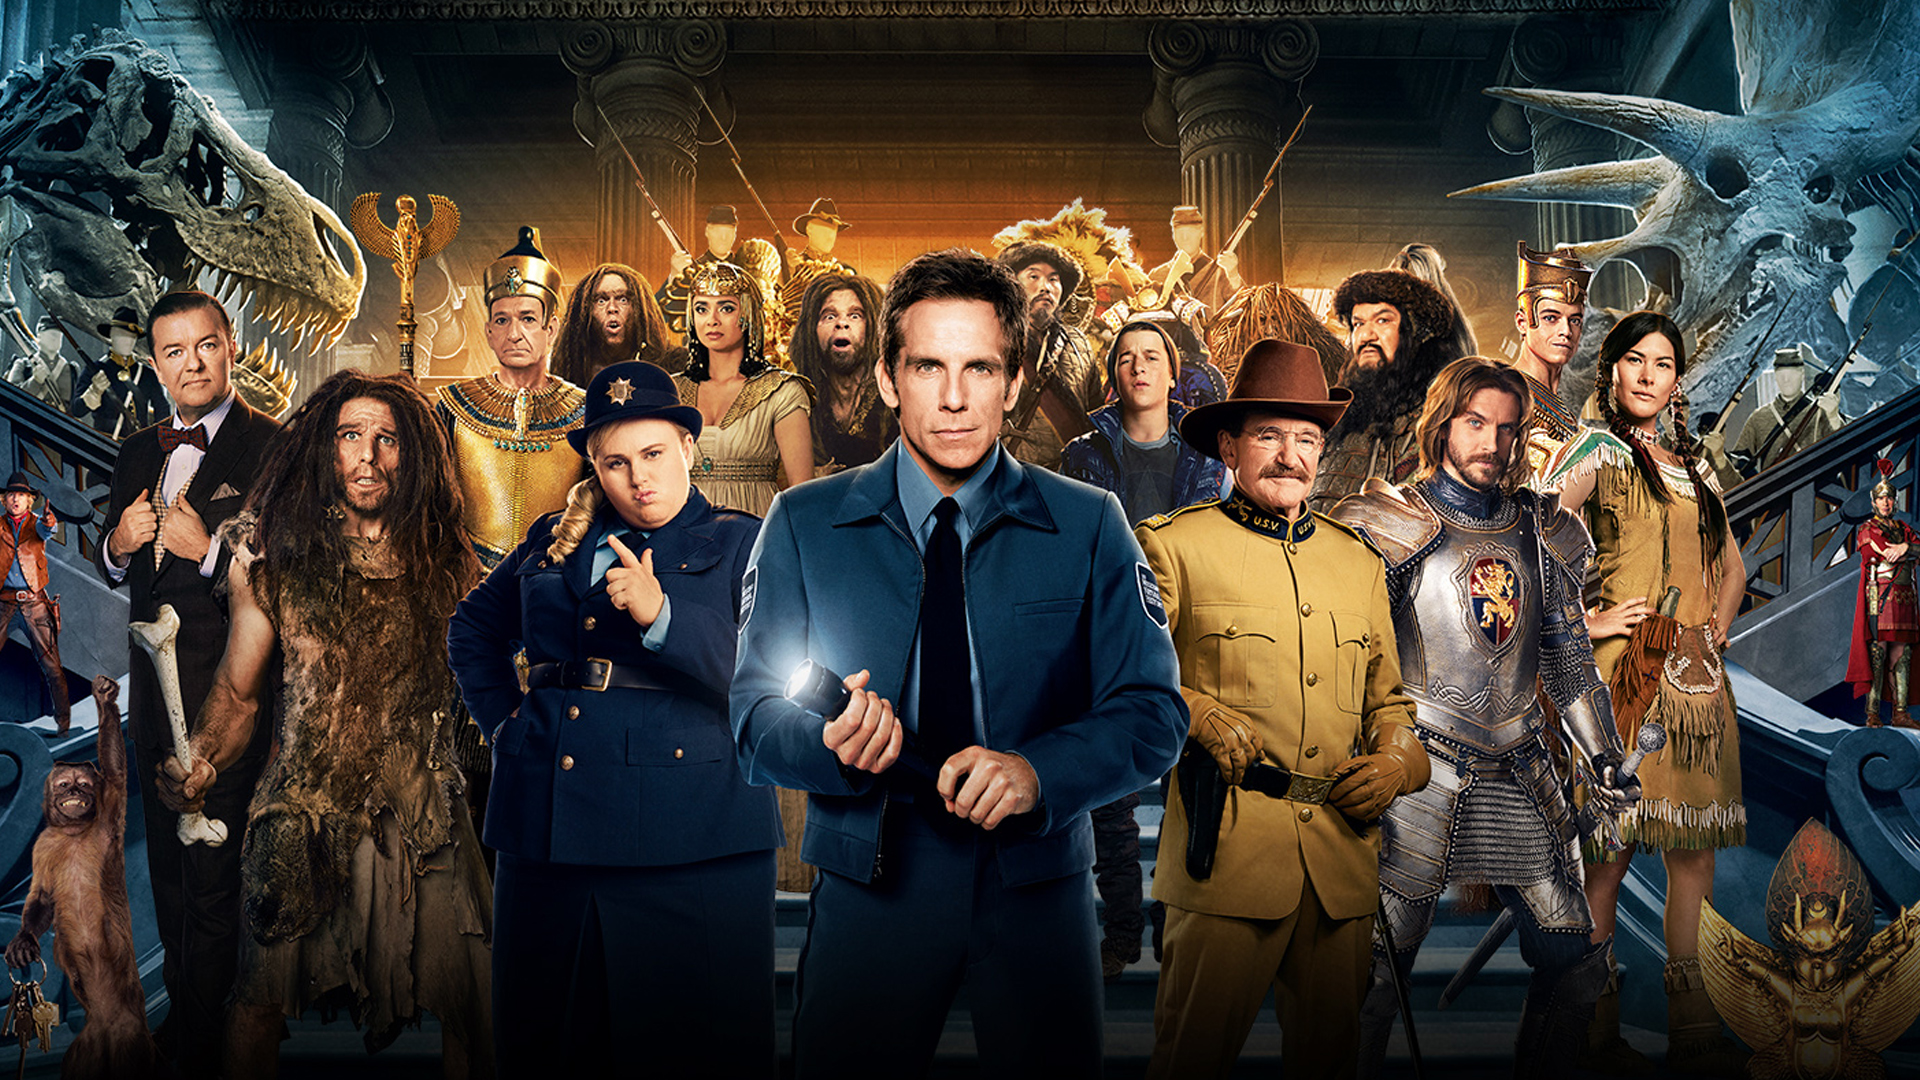 Night at the Museum: Secret of the Tomb - Movie Plot and Review